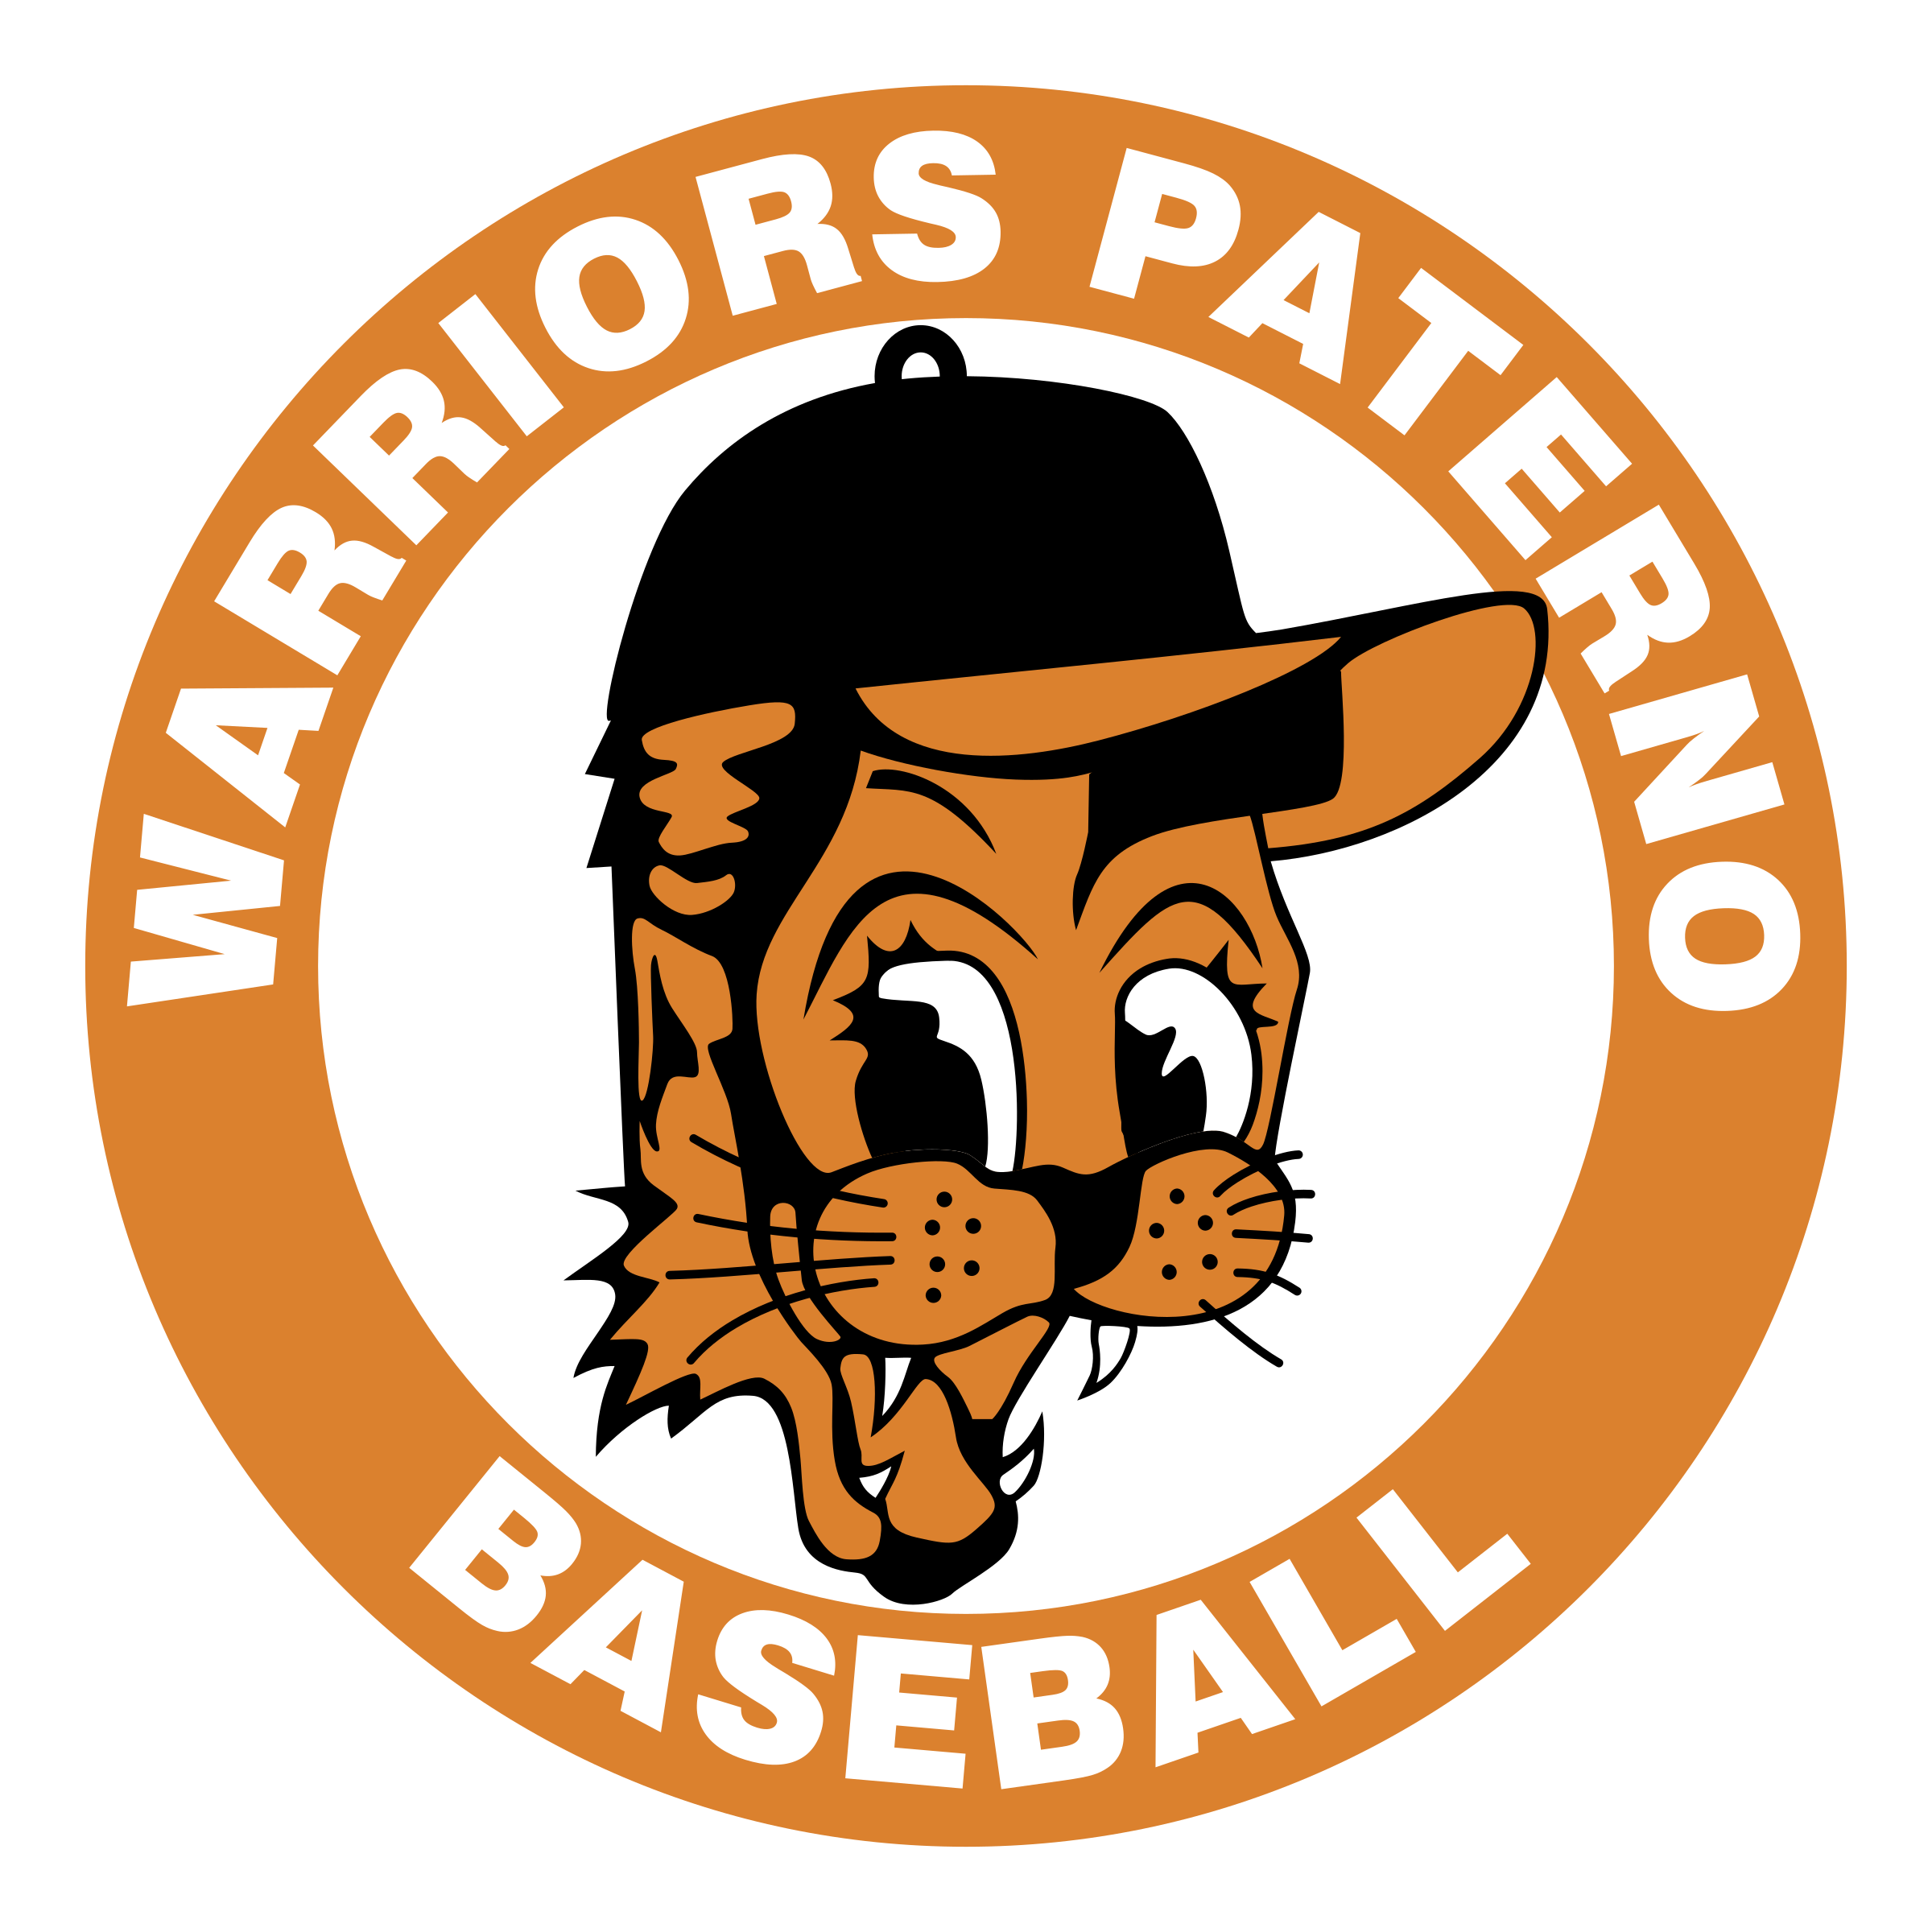 Warrior clipart warrior baseball. Warriors paterno logo png